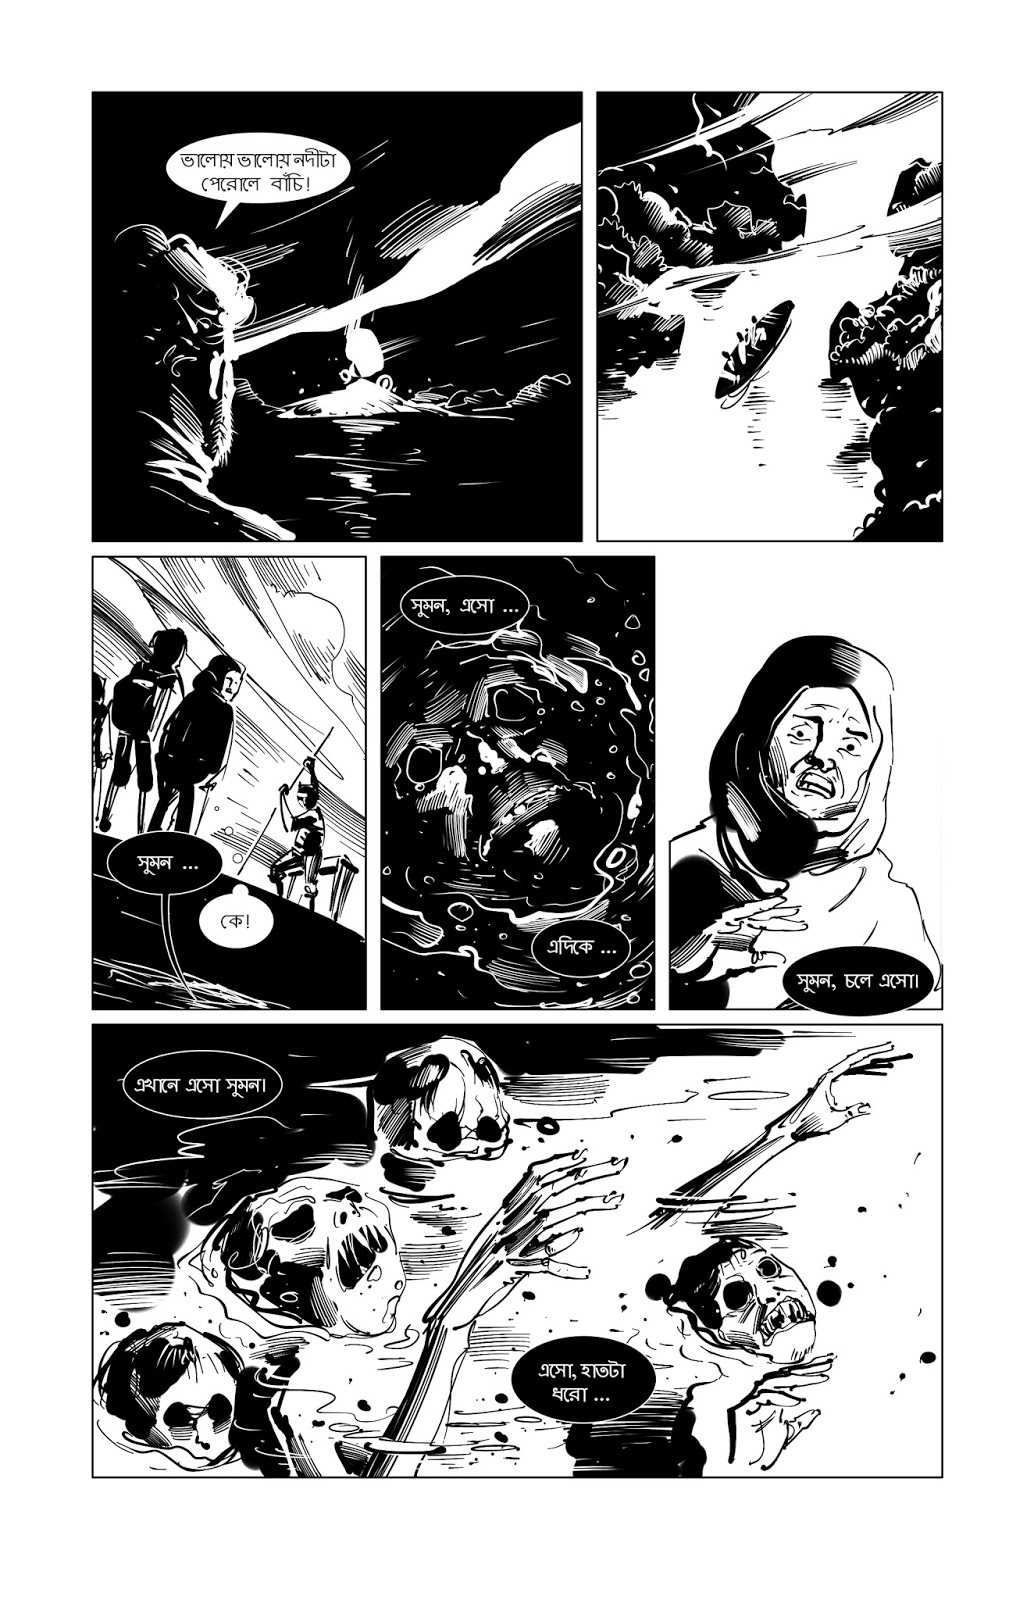 bengali horror comics page black and white illustration